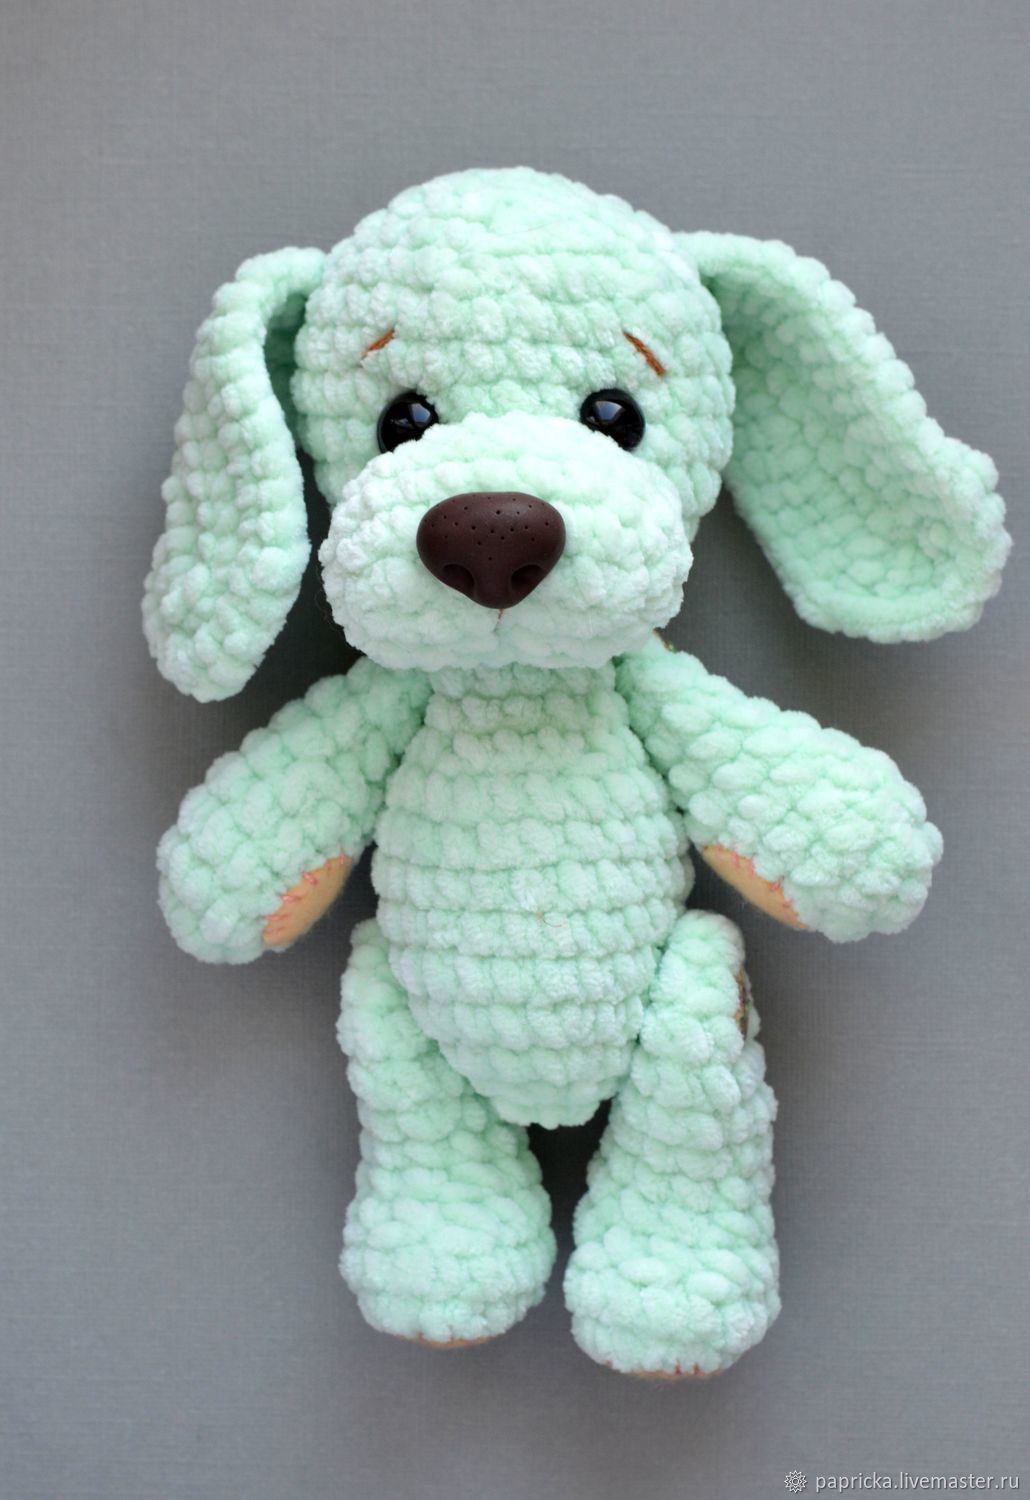 Crochet Dog Crochet Inspiration Pattern Cutie Pie собака вязание